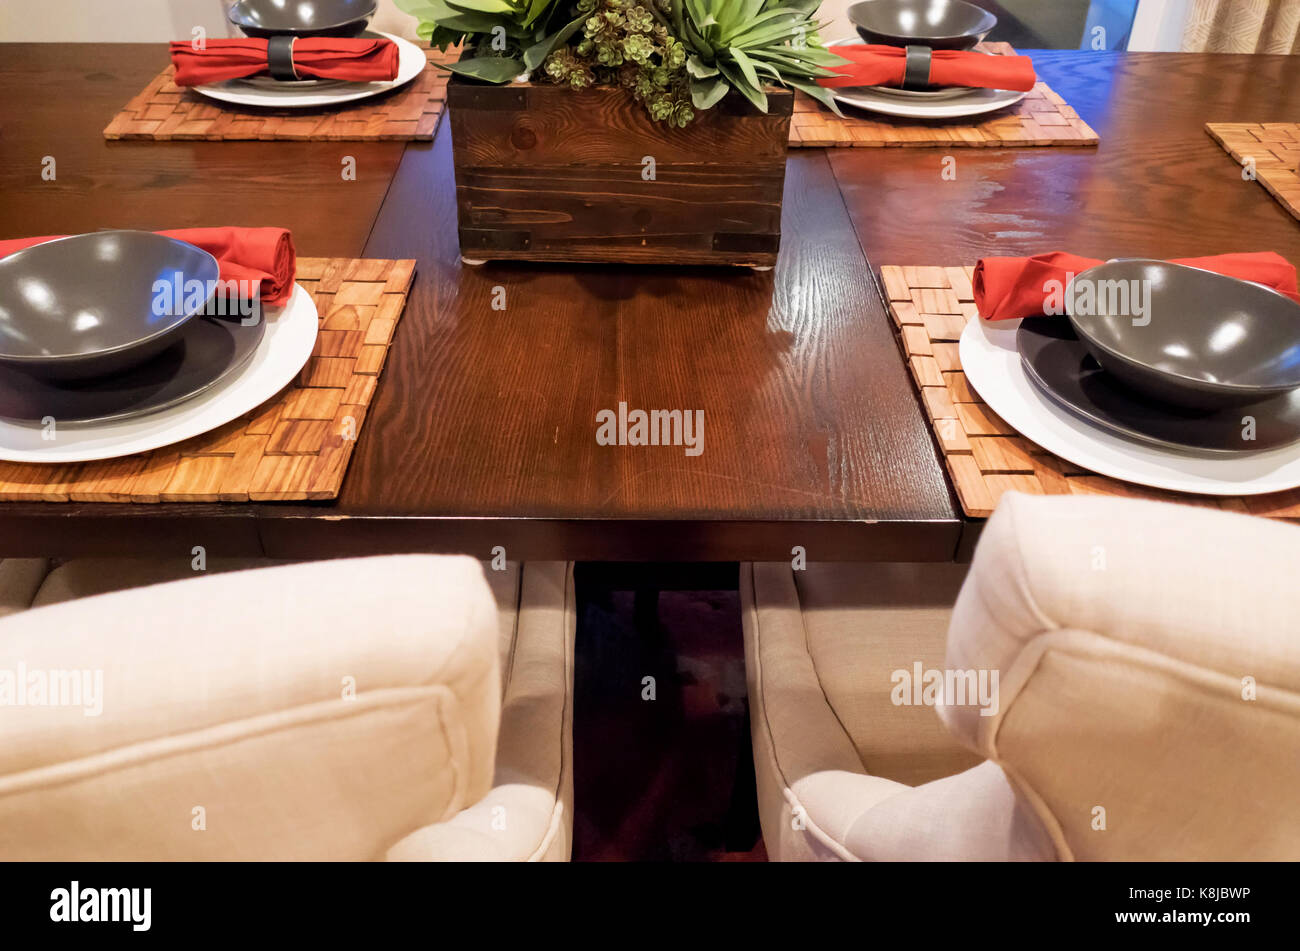 A warm dining room with gray bowls and tan chairs at a brown table. - Stock Image